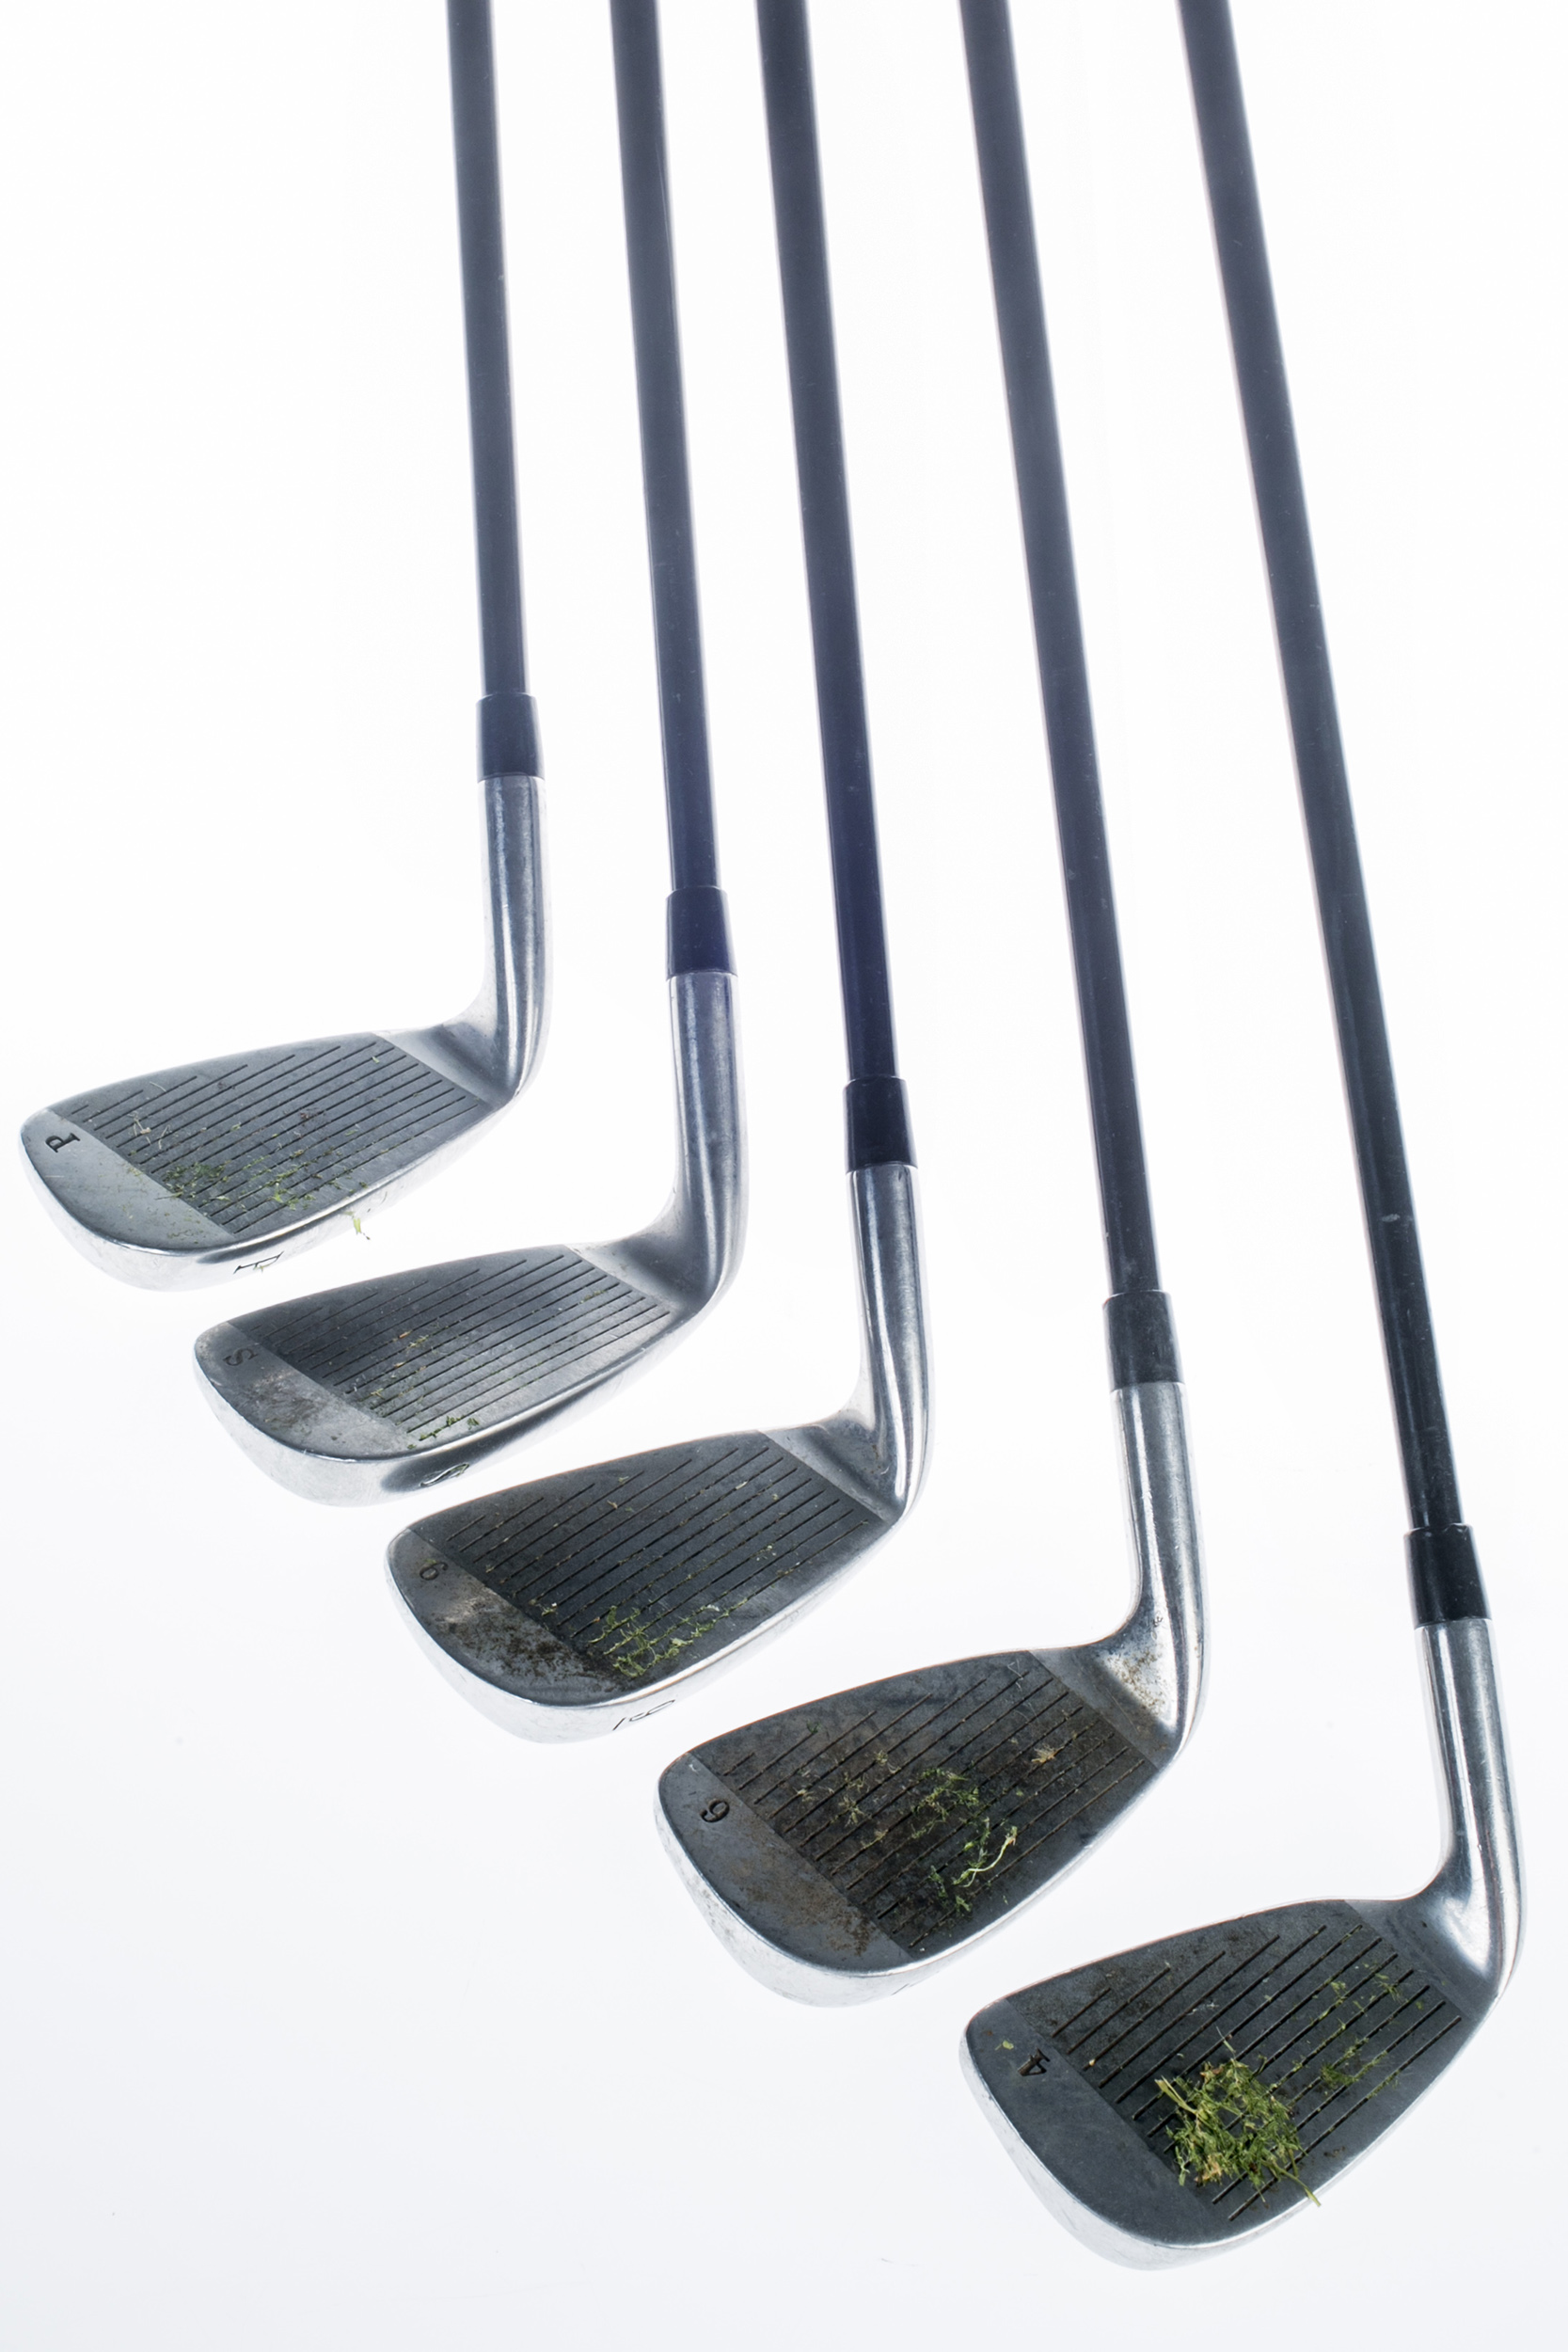 Stock stockfoto Stockfotos Golfclubs golfen sport green hole caddy bal golfclub bezigheid